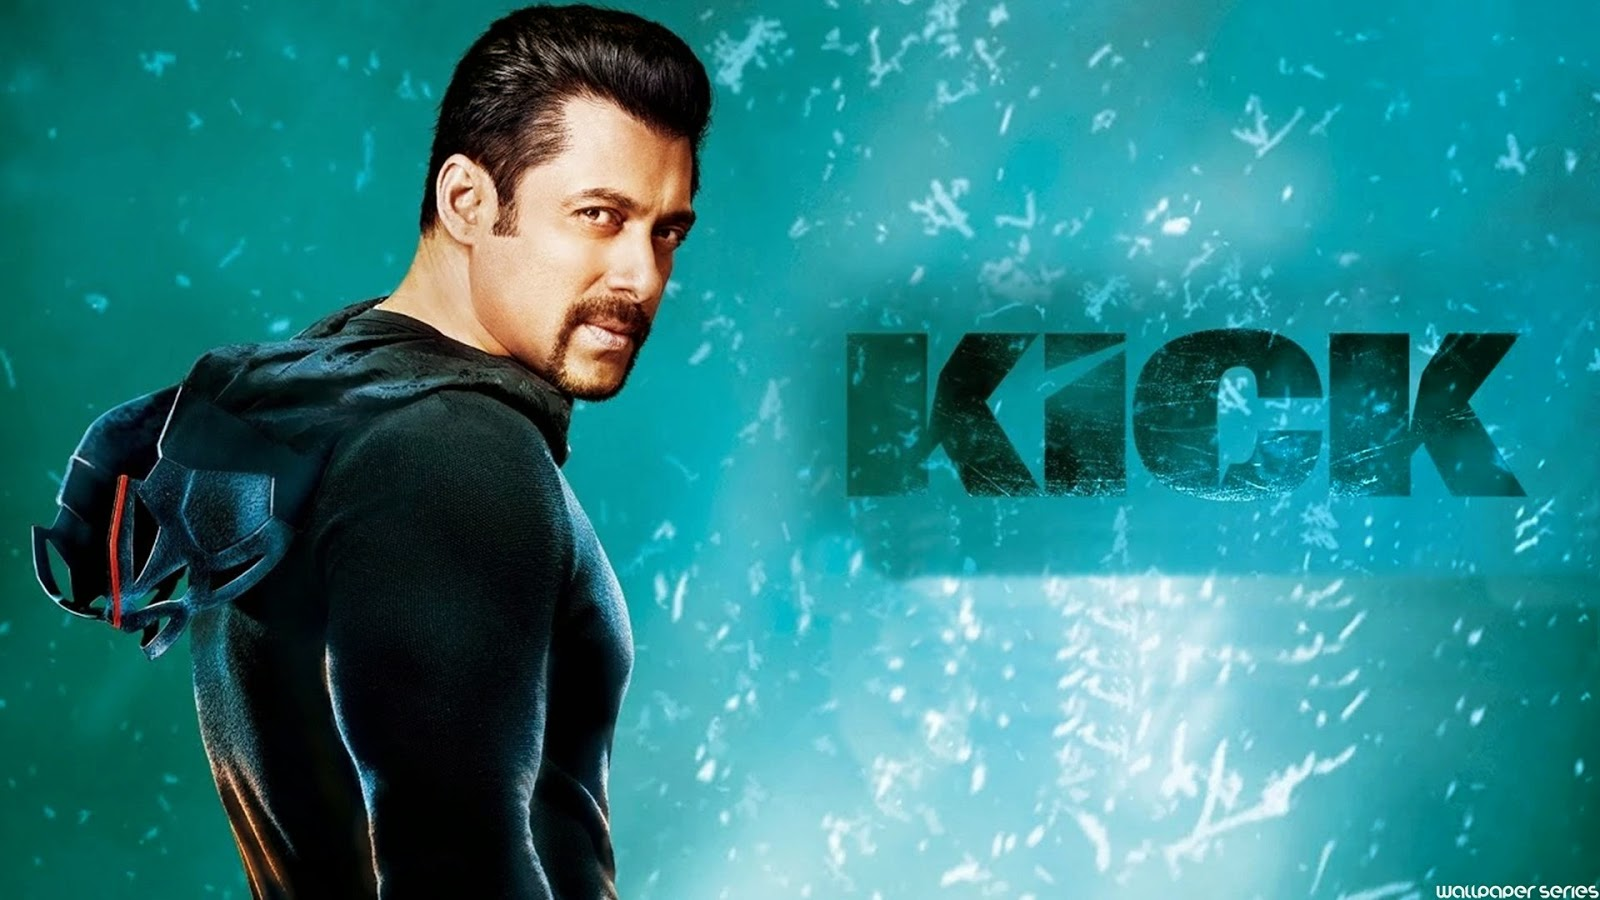 kick full movie bollywood hd movie - entertainment humgama